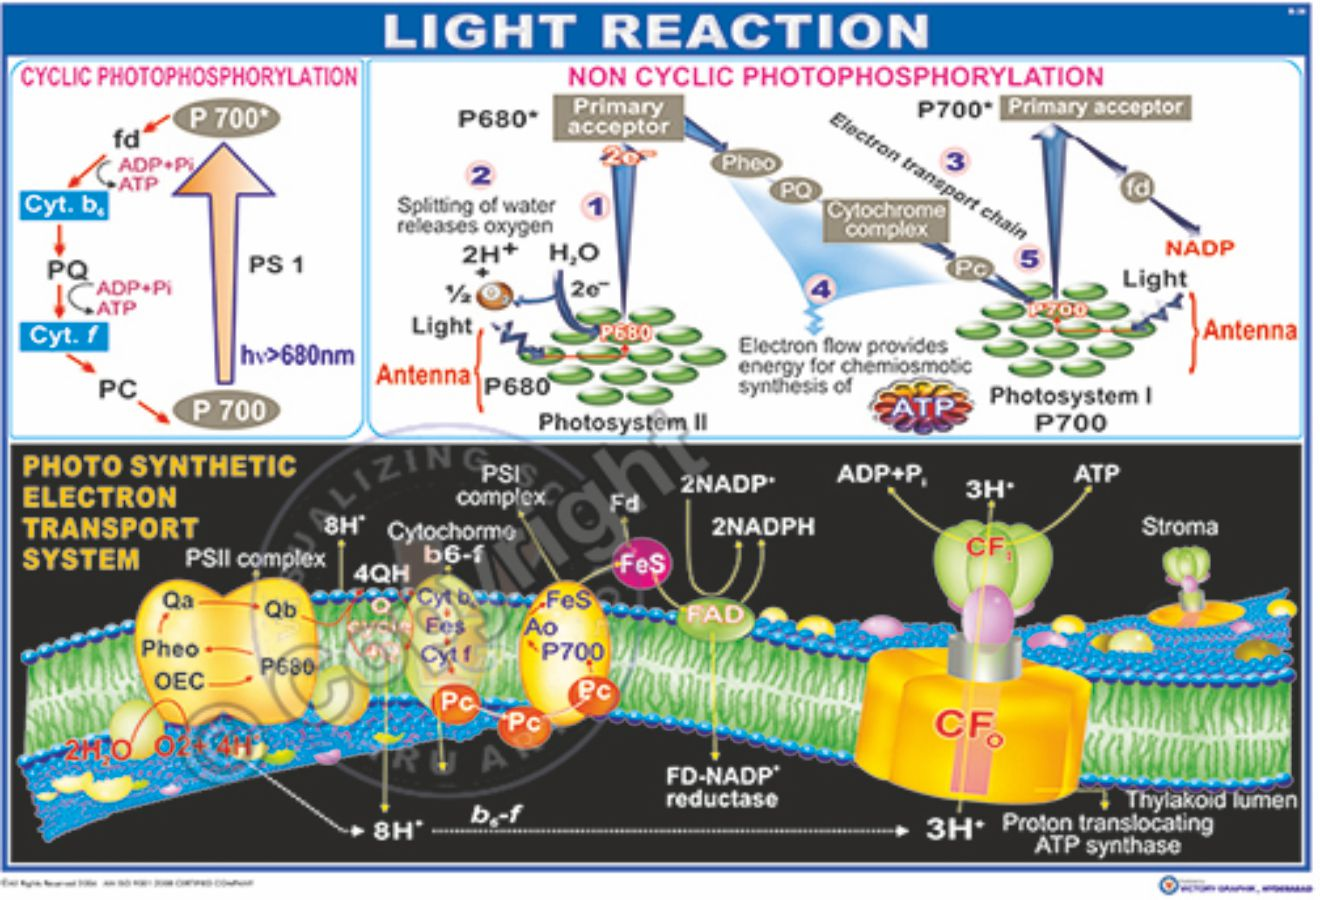 Victory graphik b 38 light reaction cyclic and non cyclic b 38light reaction cc pooptronica Choice Image